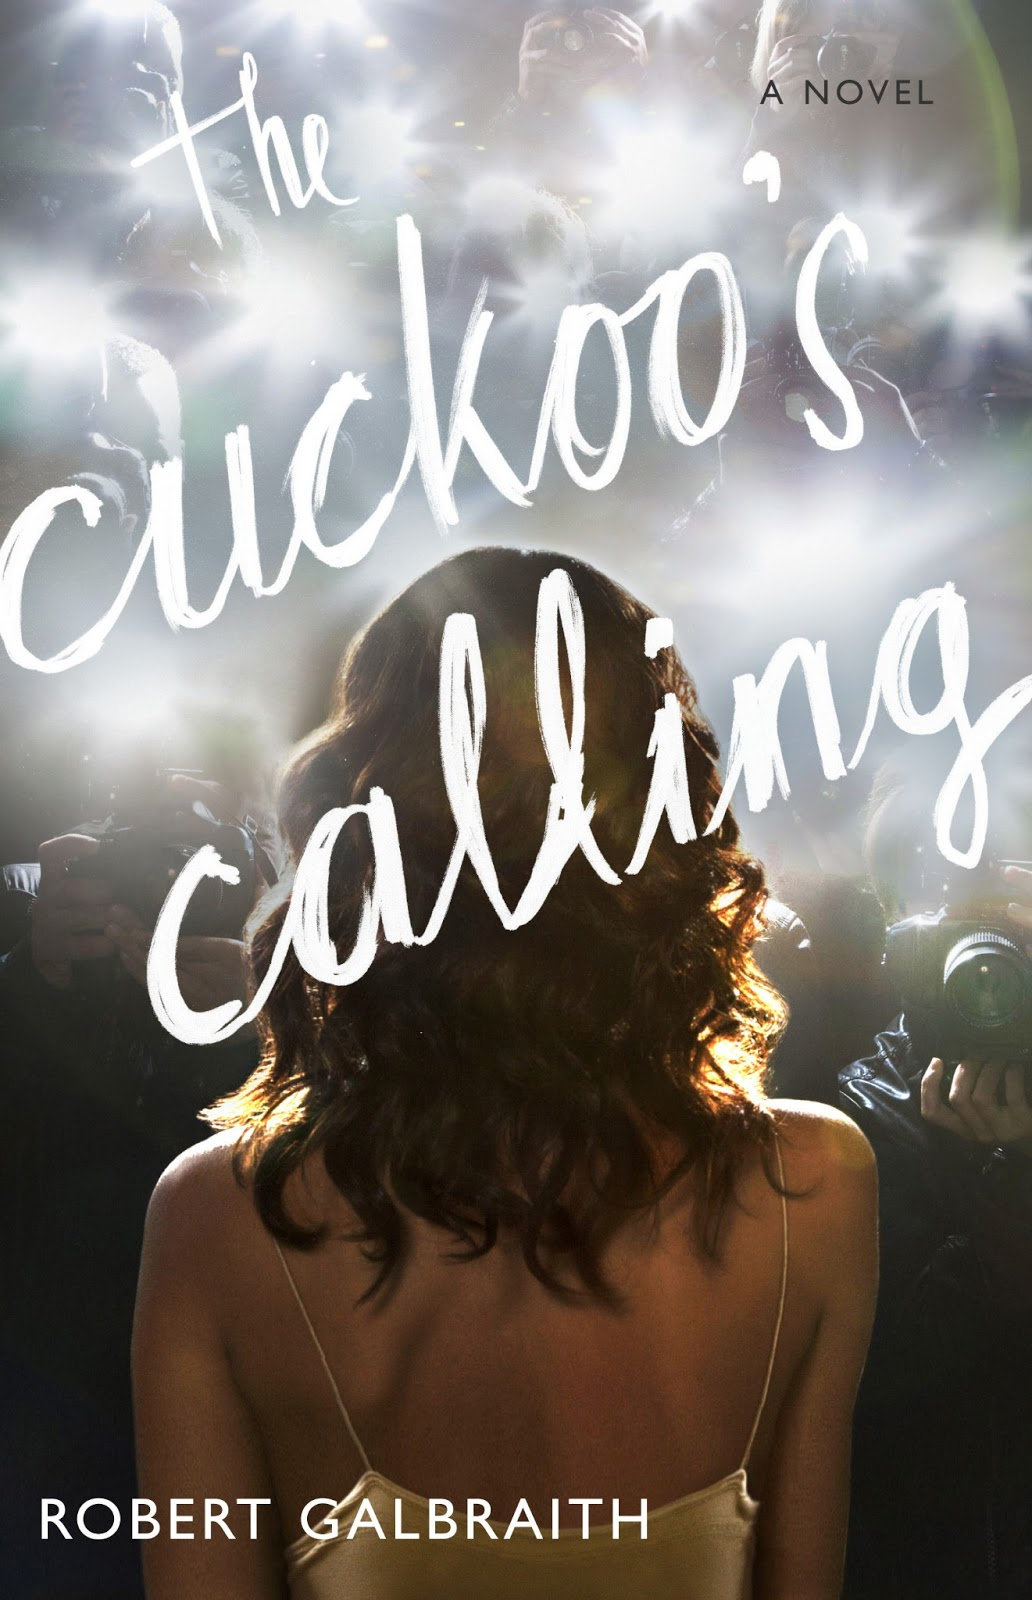 The Cuckoo's Calling by Robert Galbraith